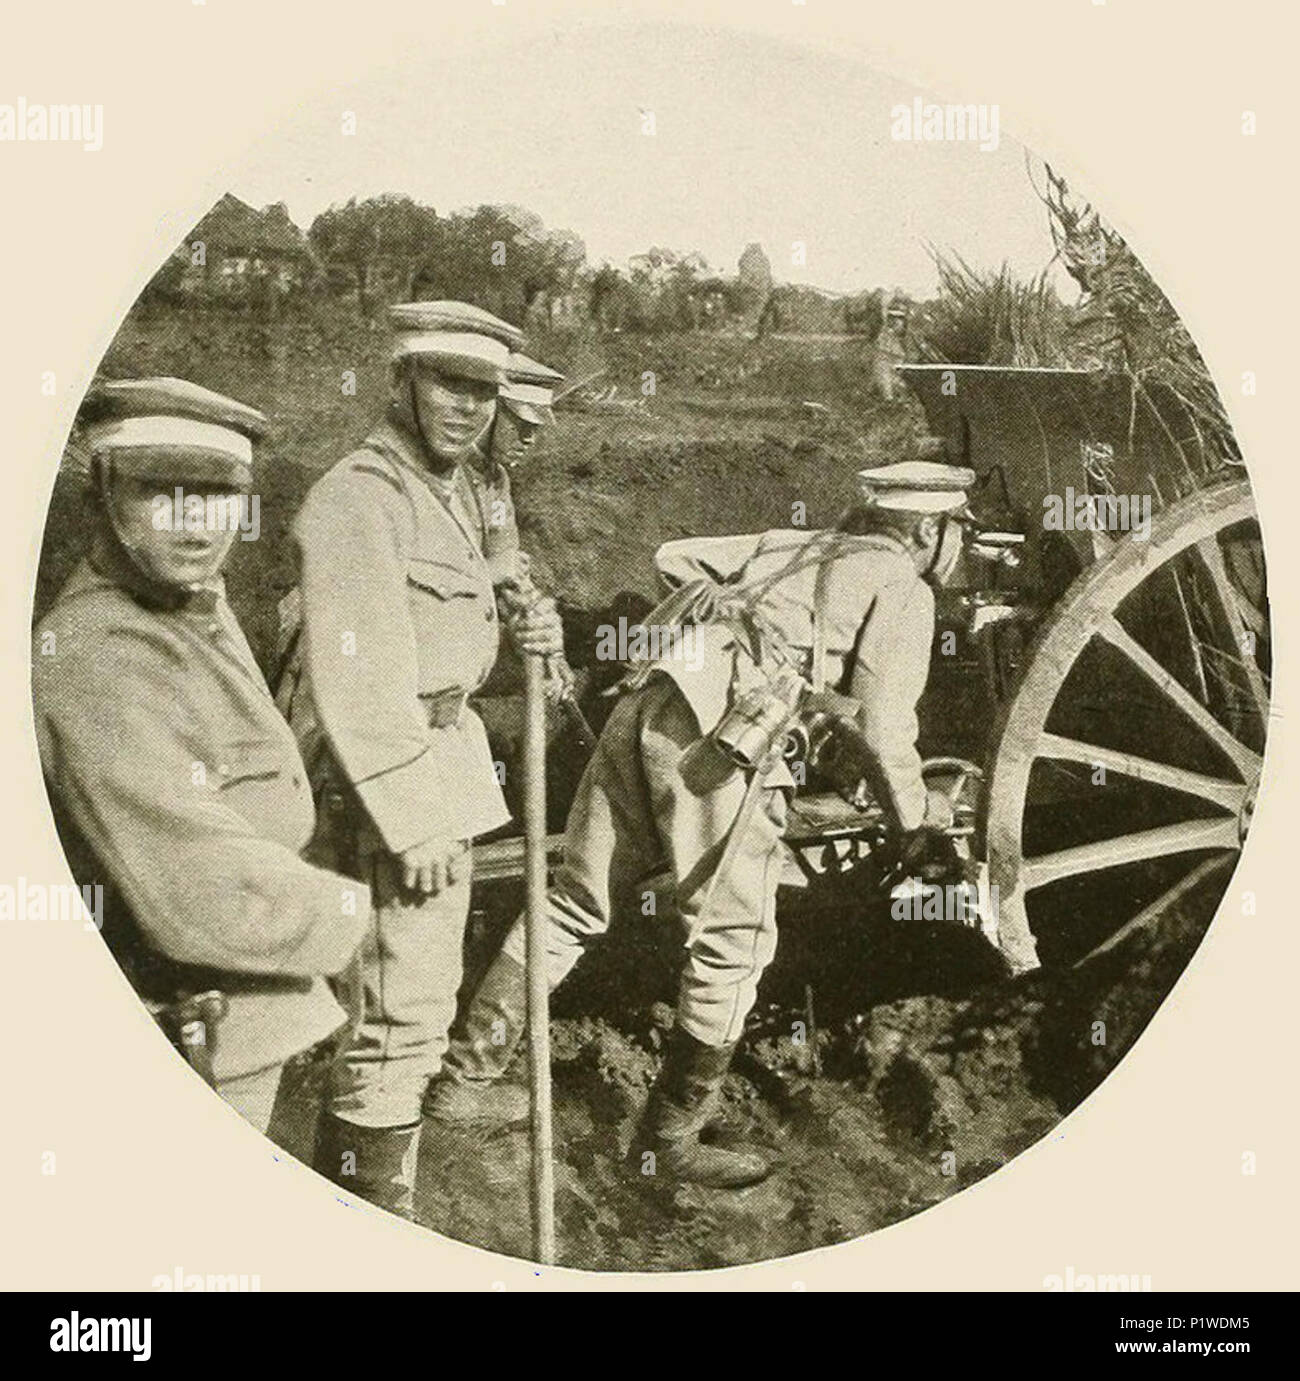 (1919) pic13 - Japanese big guns in Siberia. - Stock Image